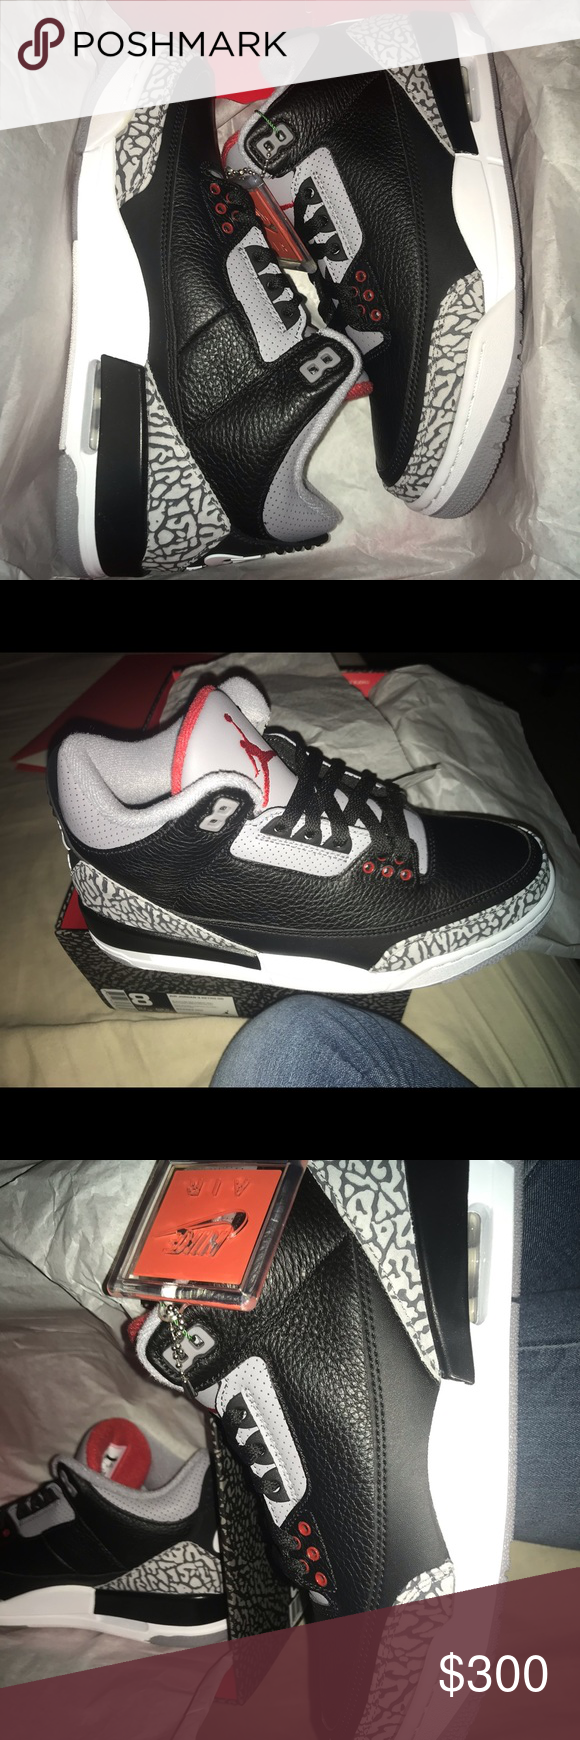 quality design 86c9e 89d23 Jordan Retro 3 Cement Mens size 8. Never been worn and ...